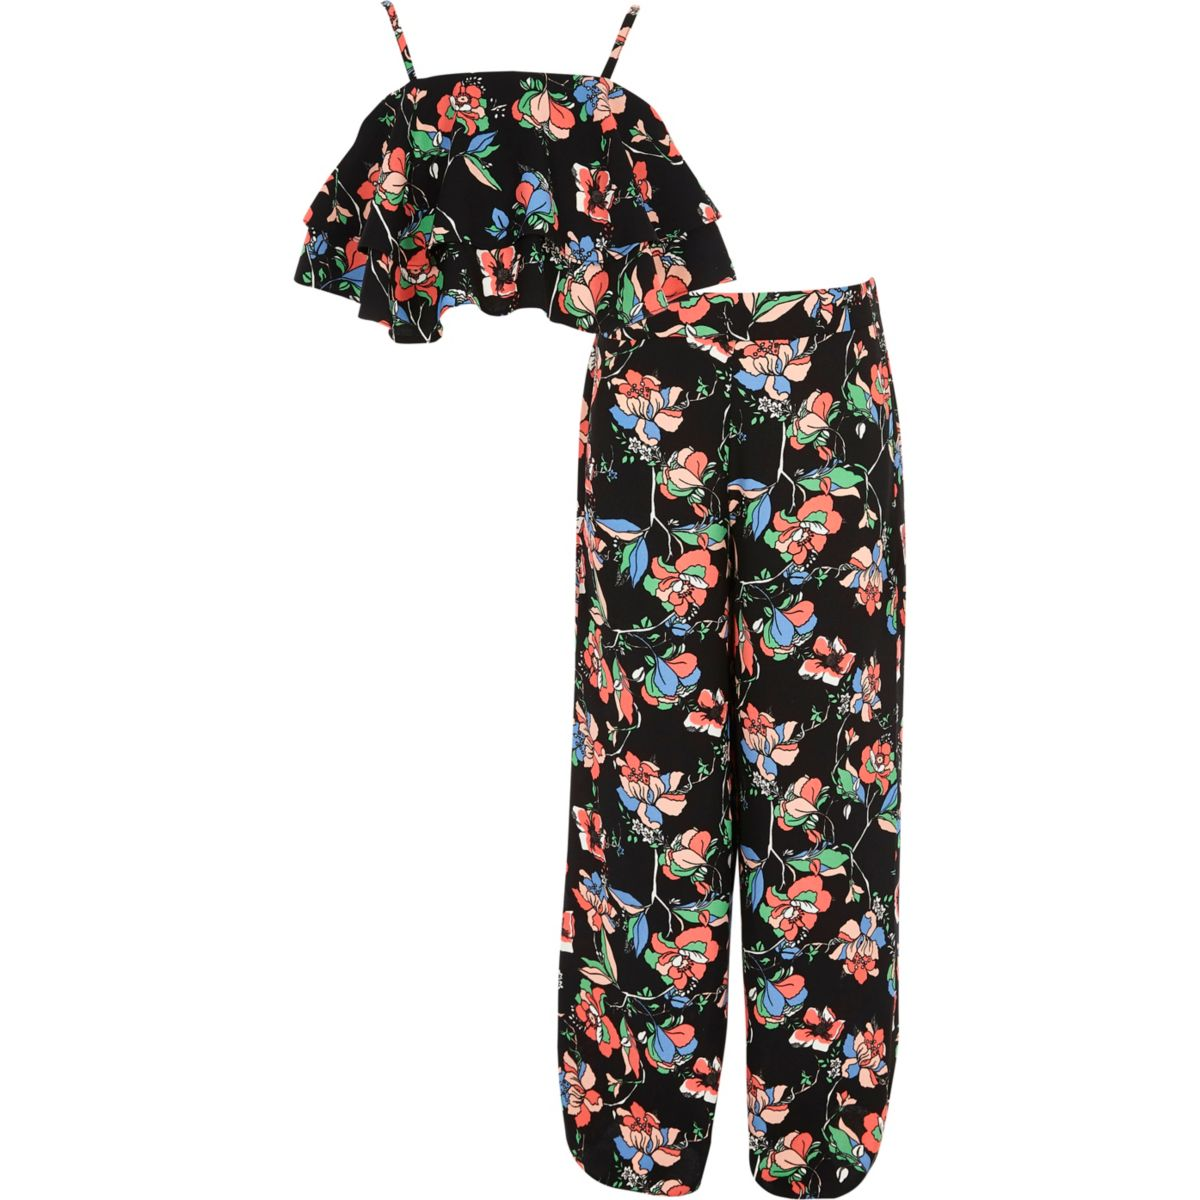 Girls black floral layered crop top outfit